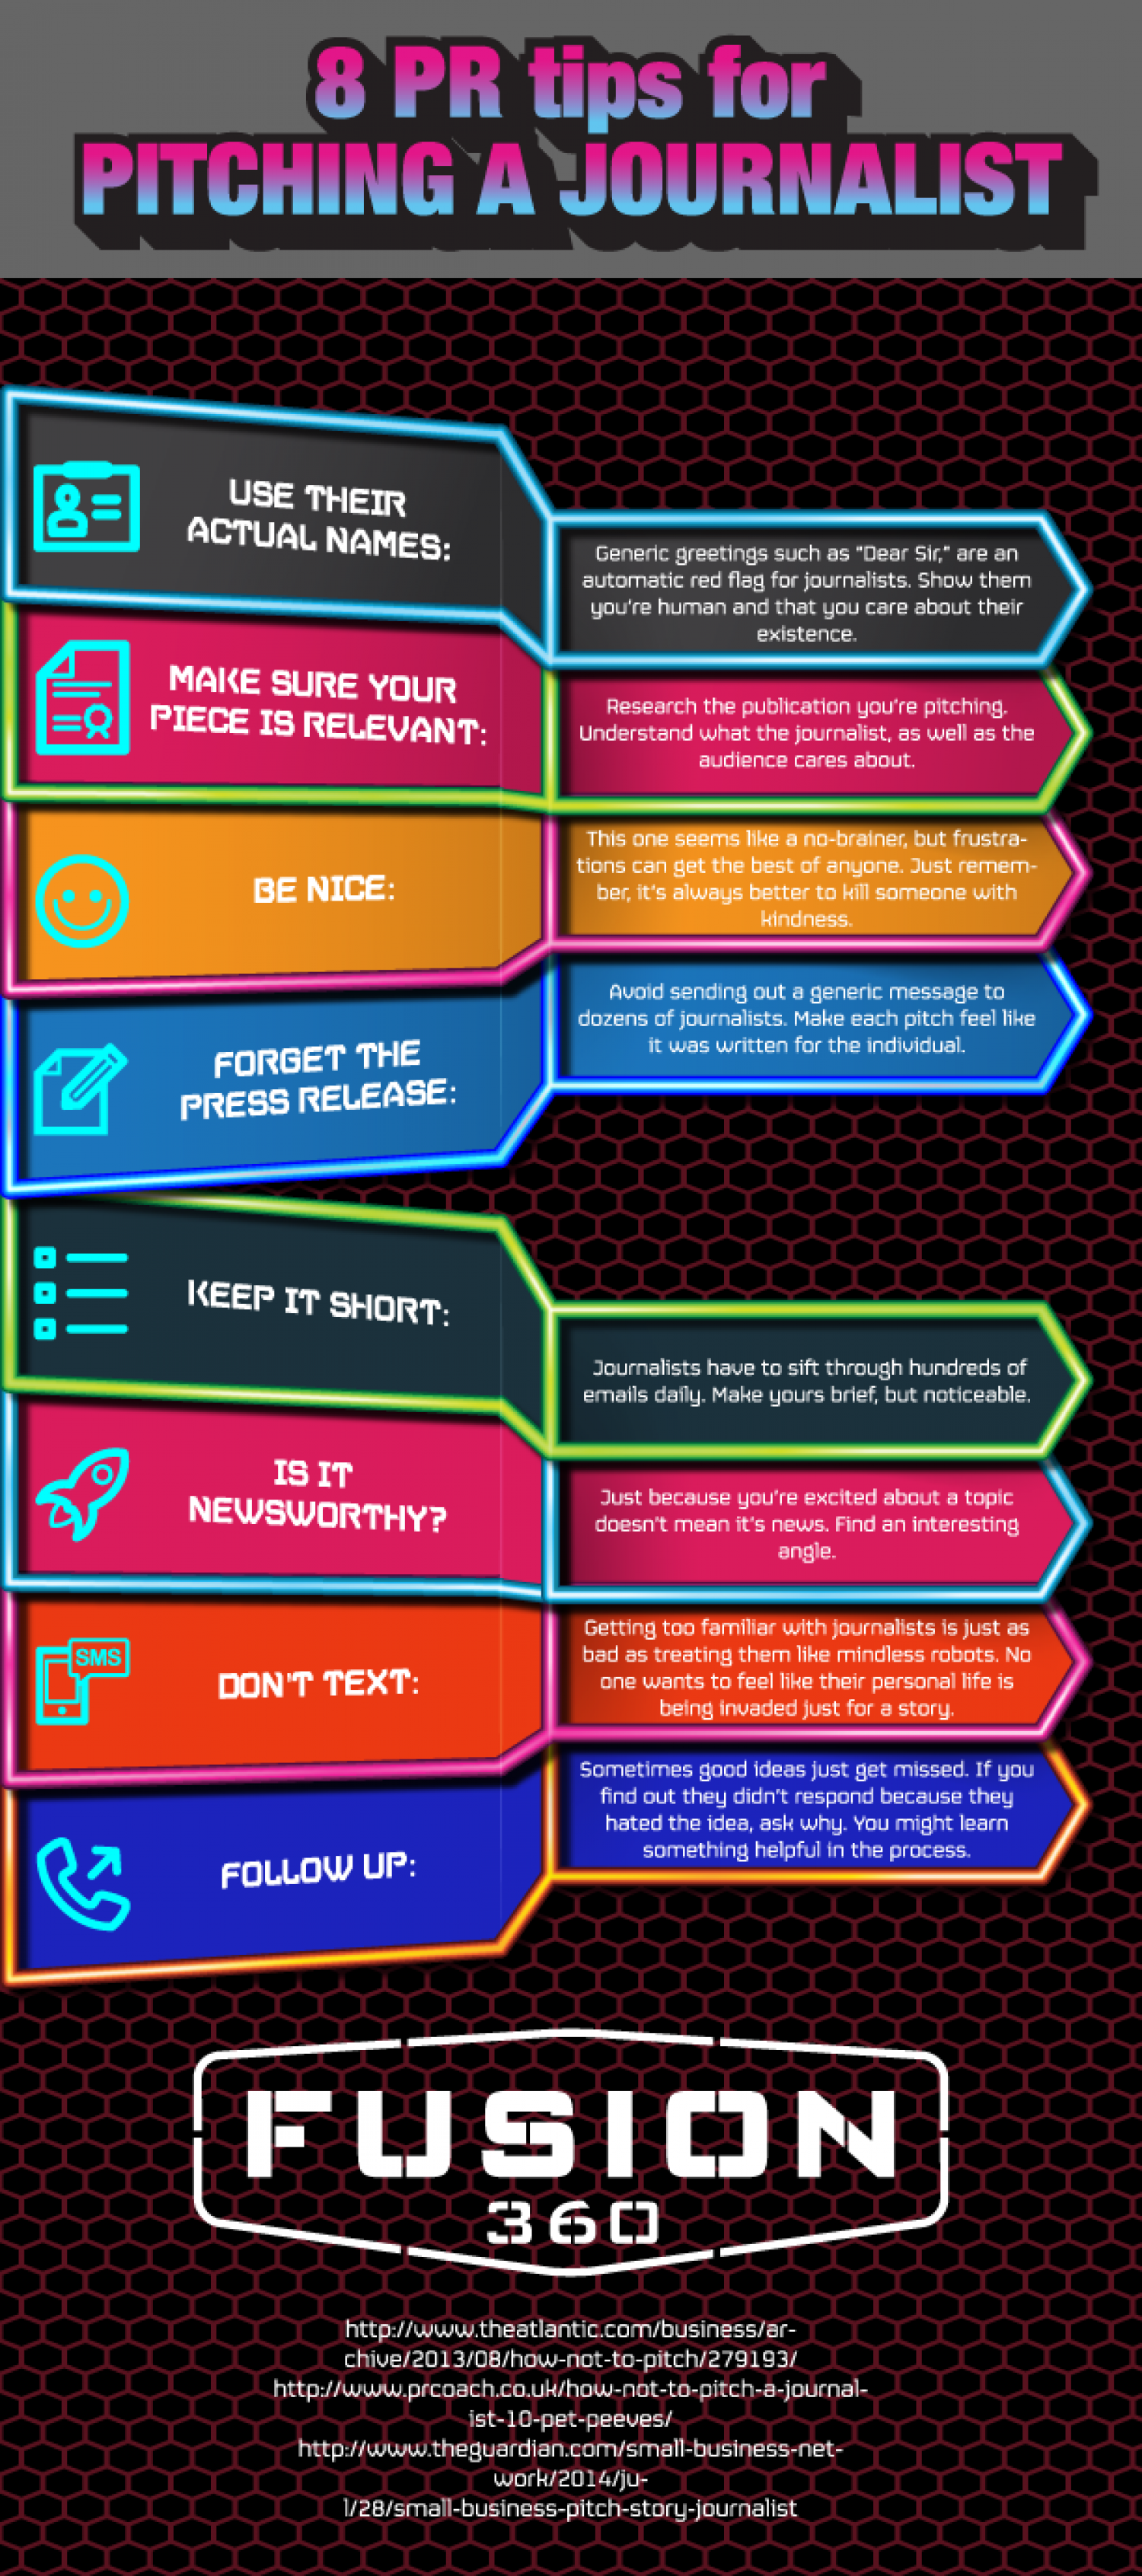 8 PR Tips for Pitching a Journalist Infographic